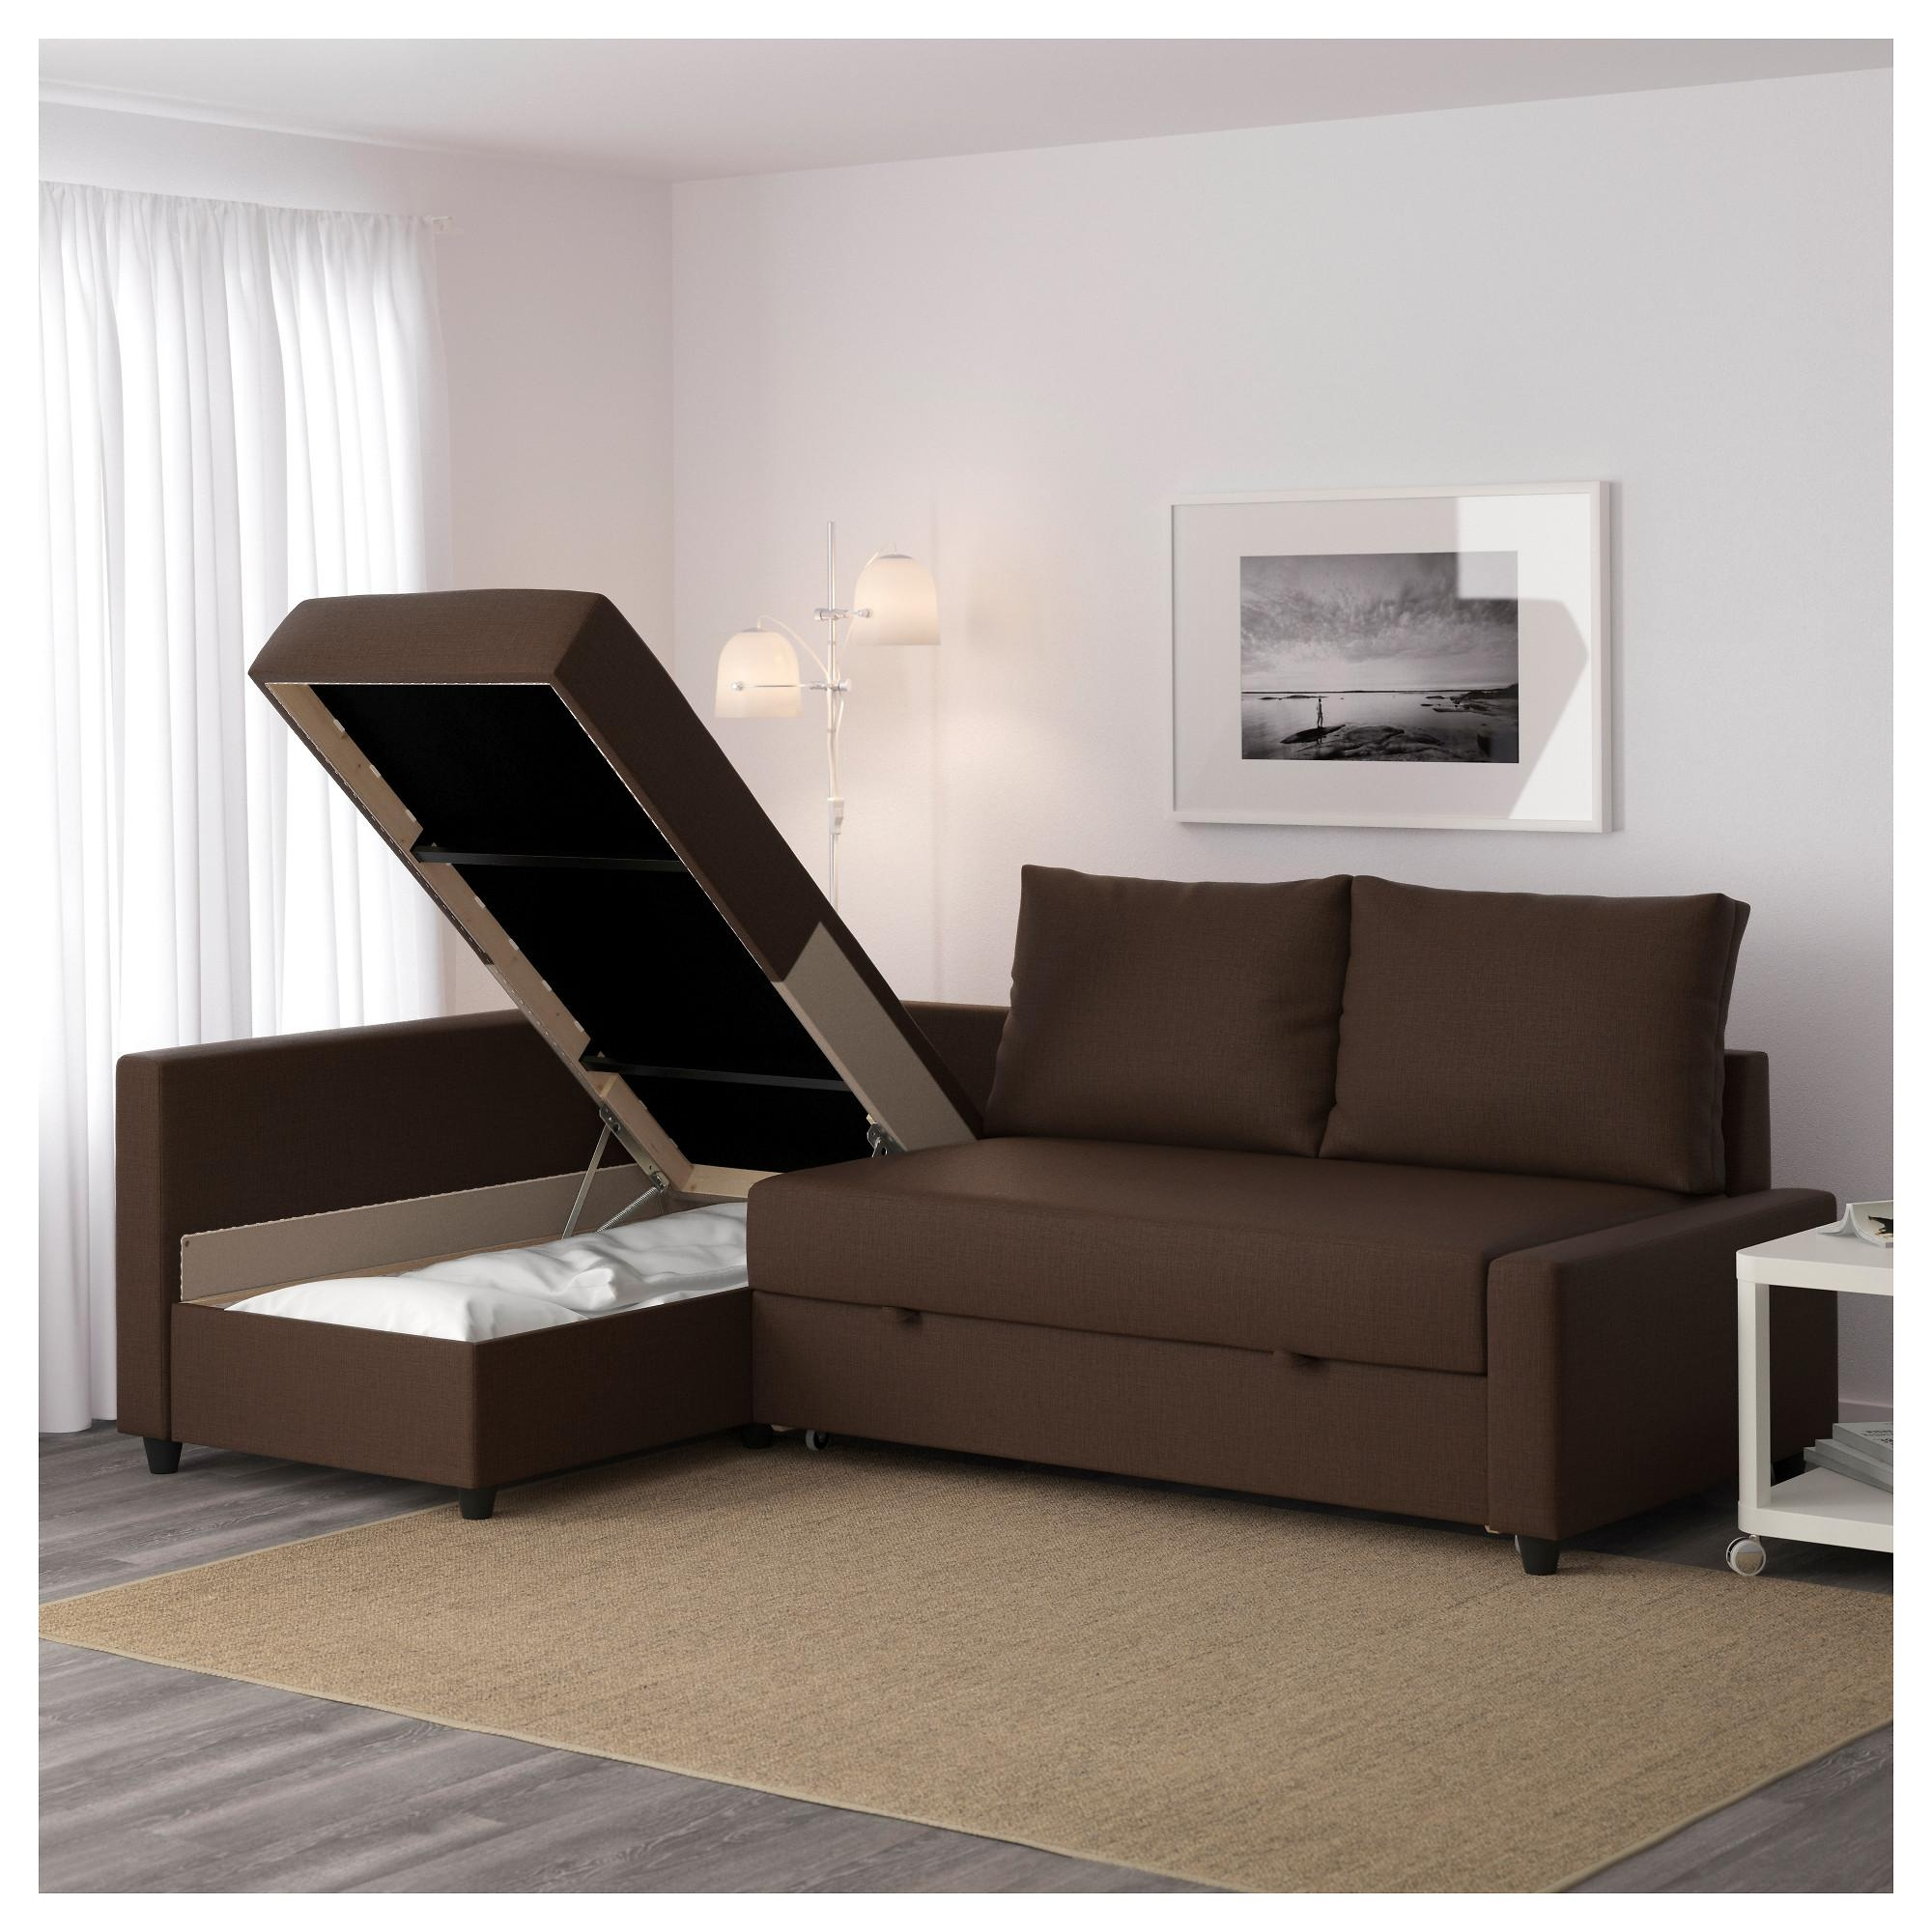 20+ Choices of Sofa Beds With Chaise Lounge